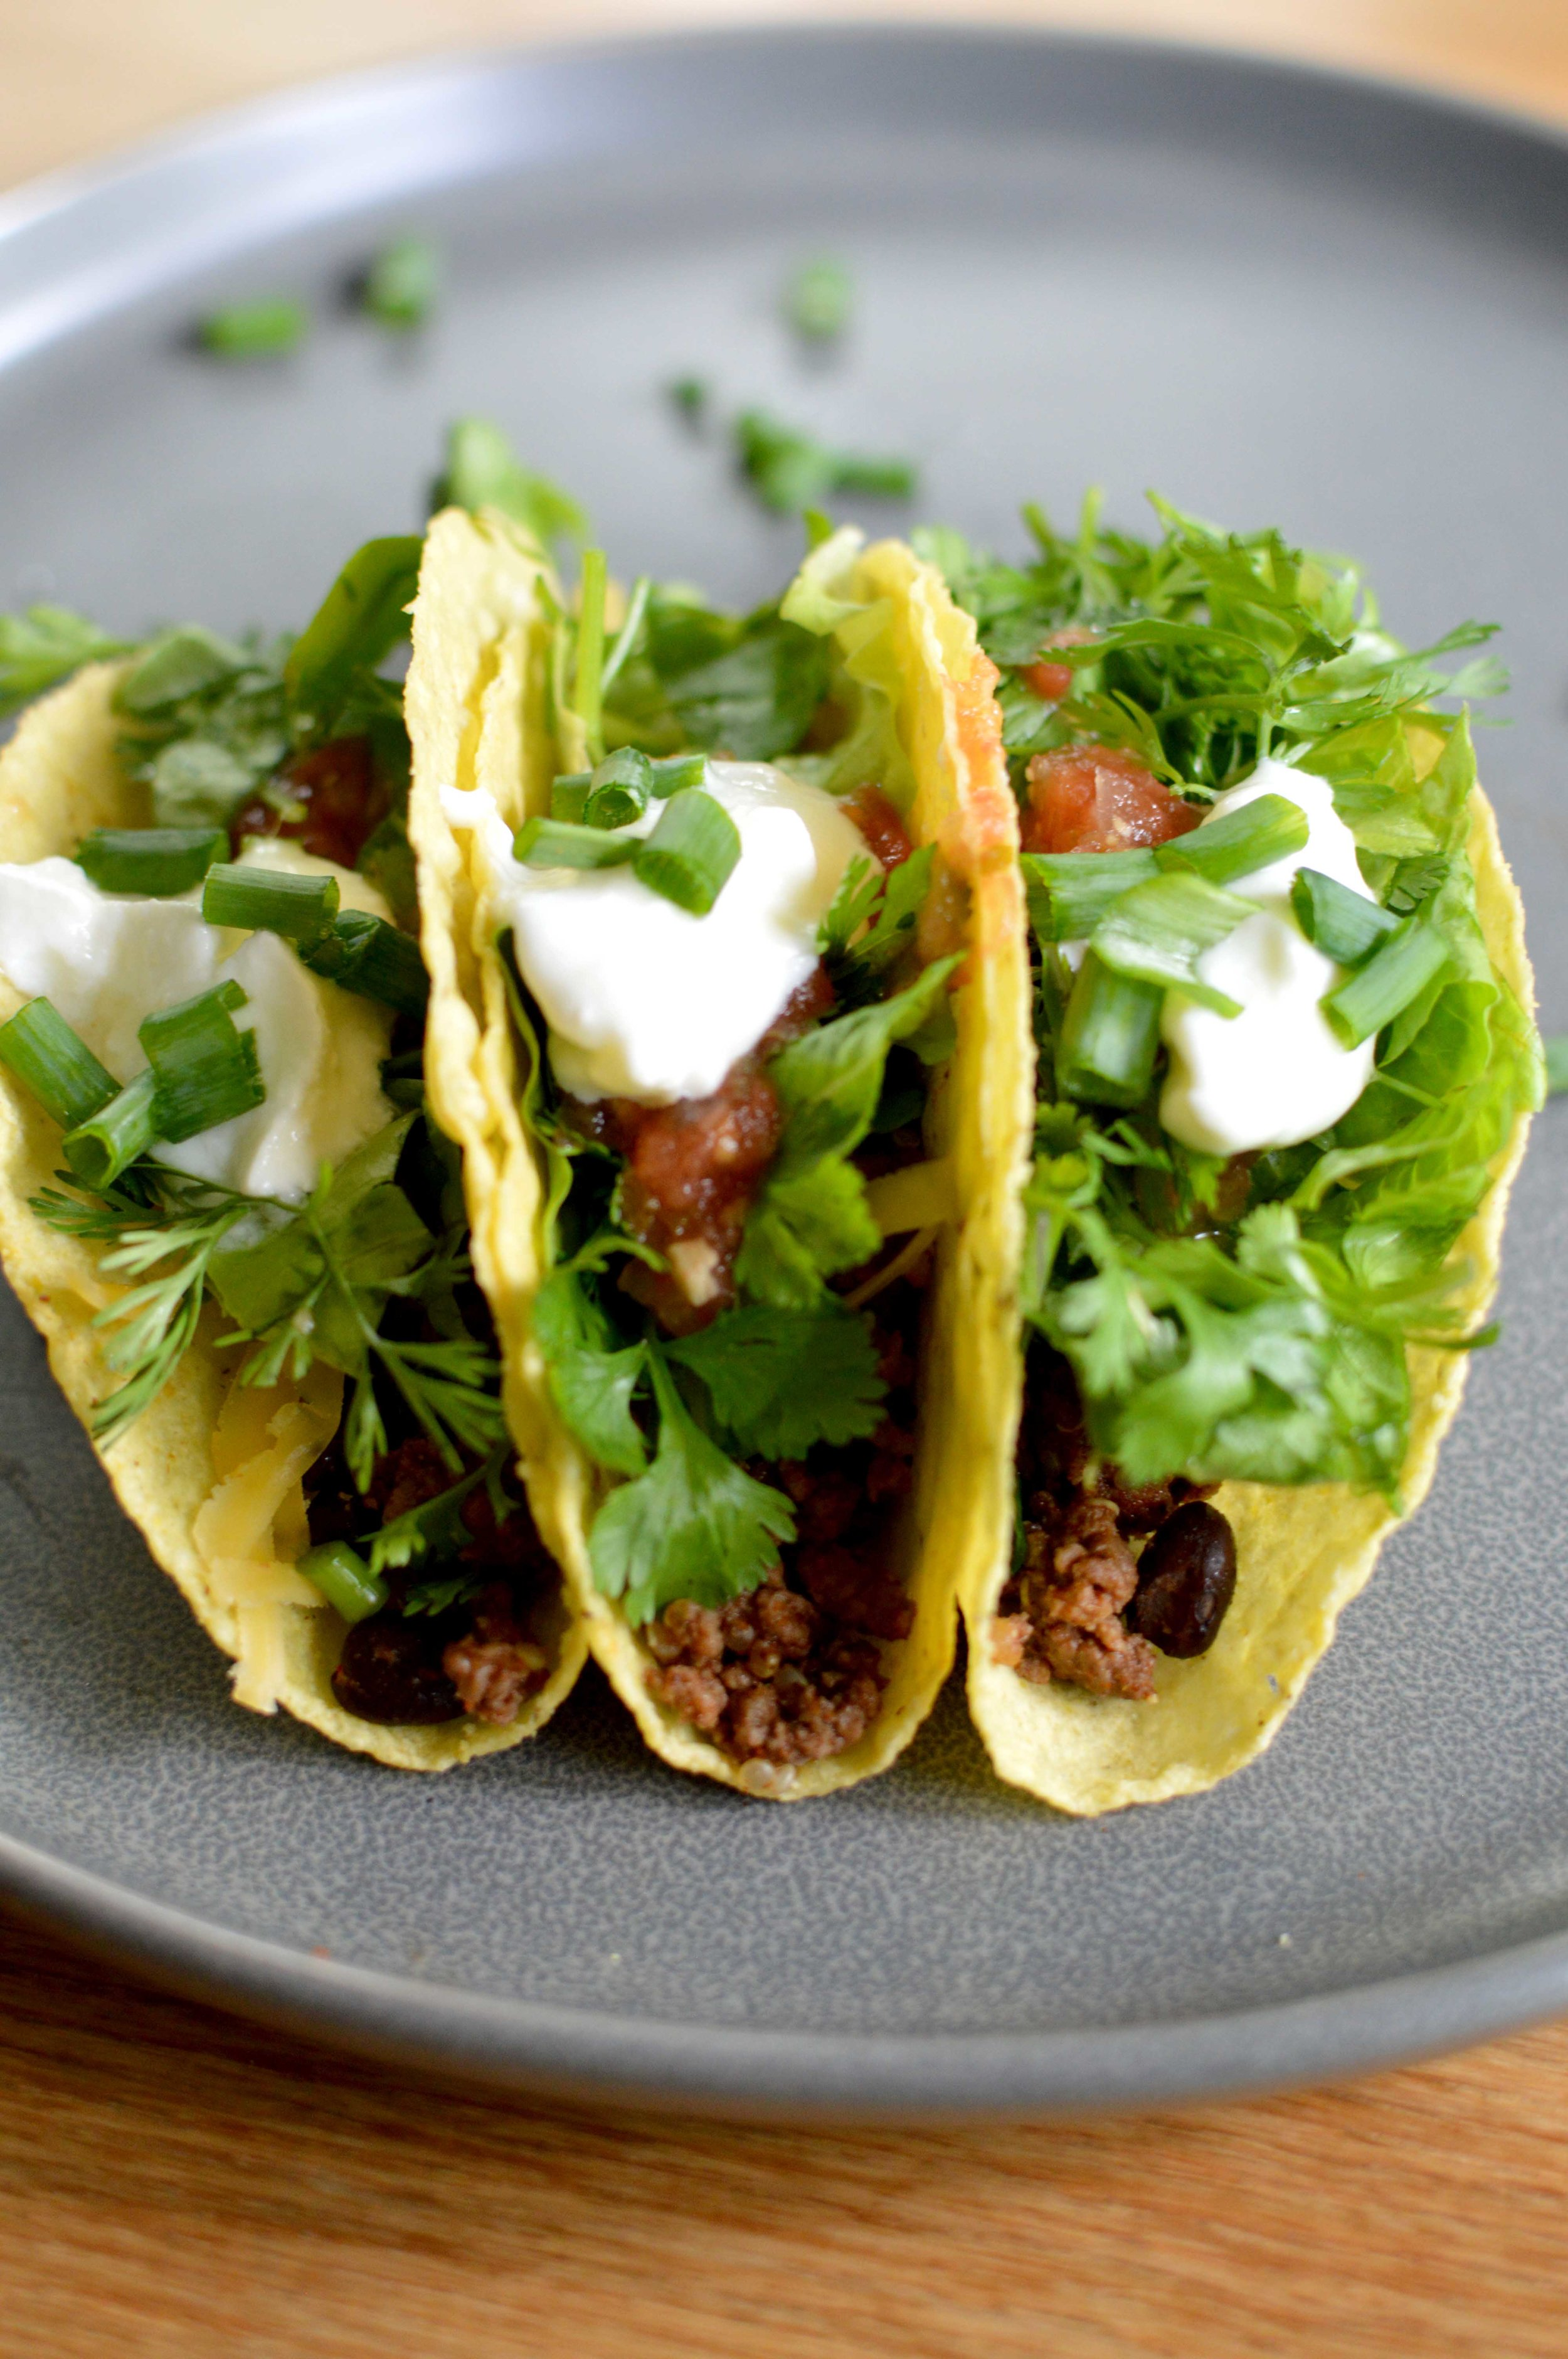 Tacos with beef, black beans, cilantro, green onions, home canned salsa, lettuce, and plain yogurt